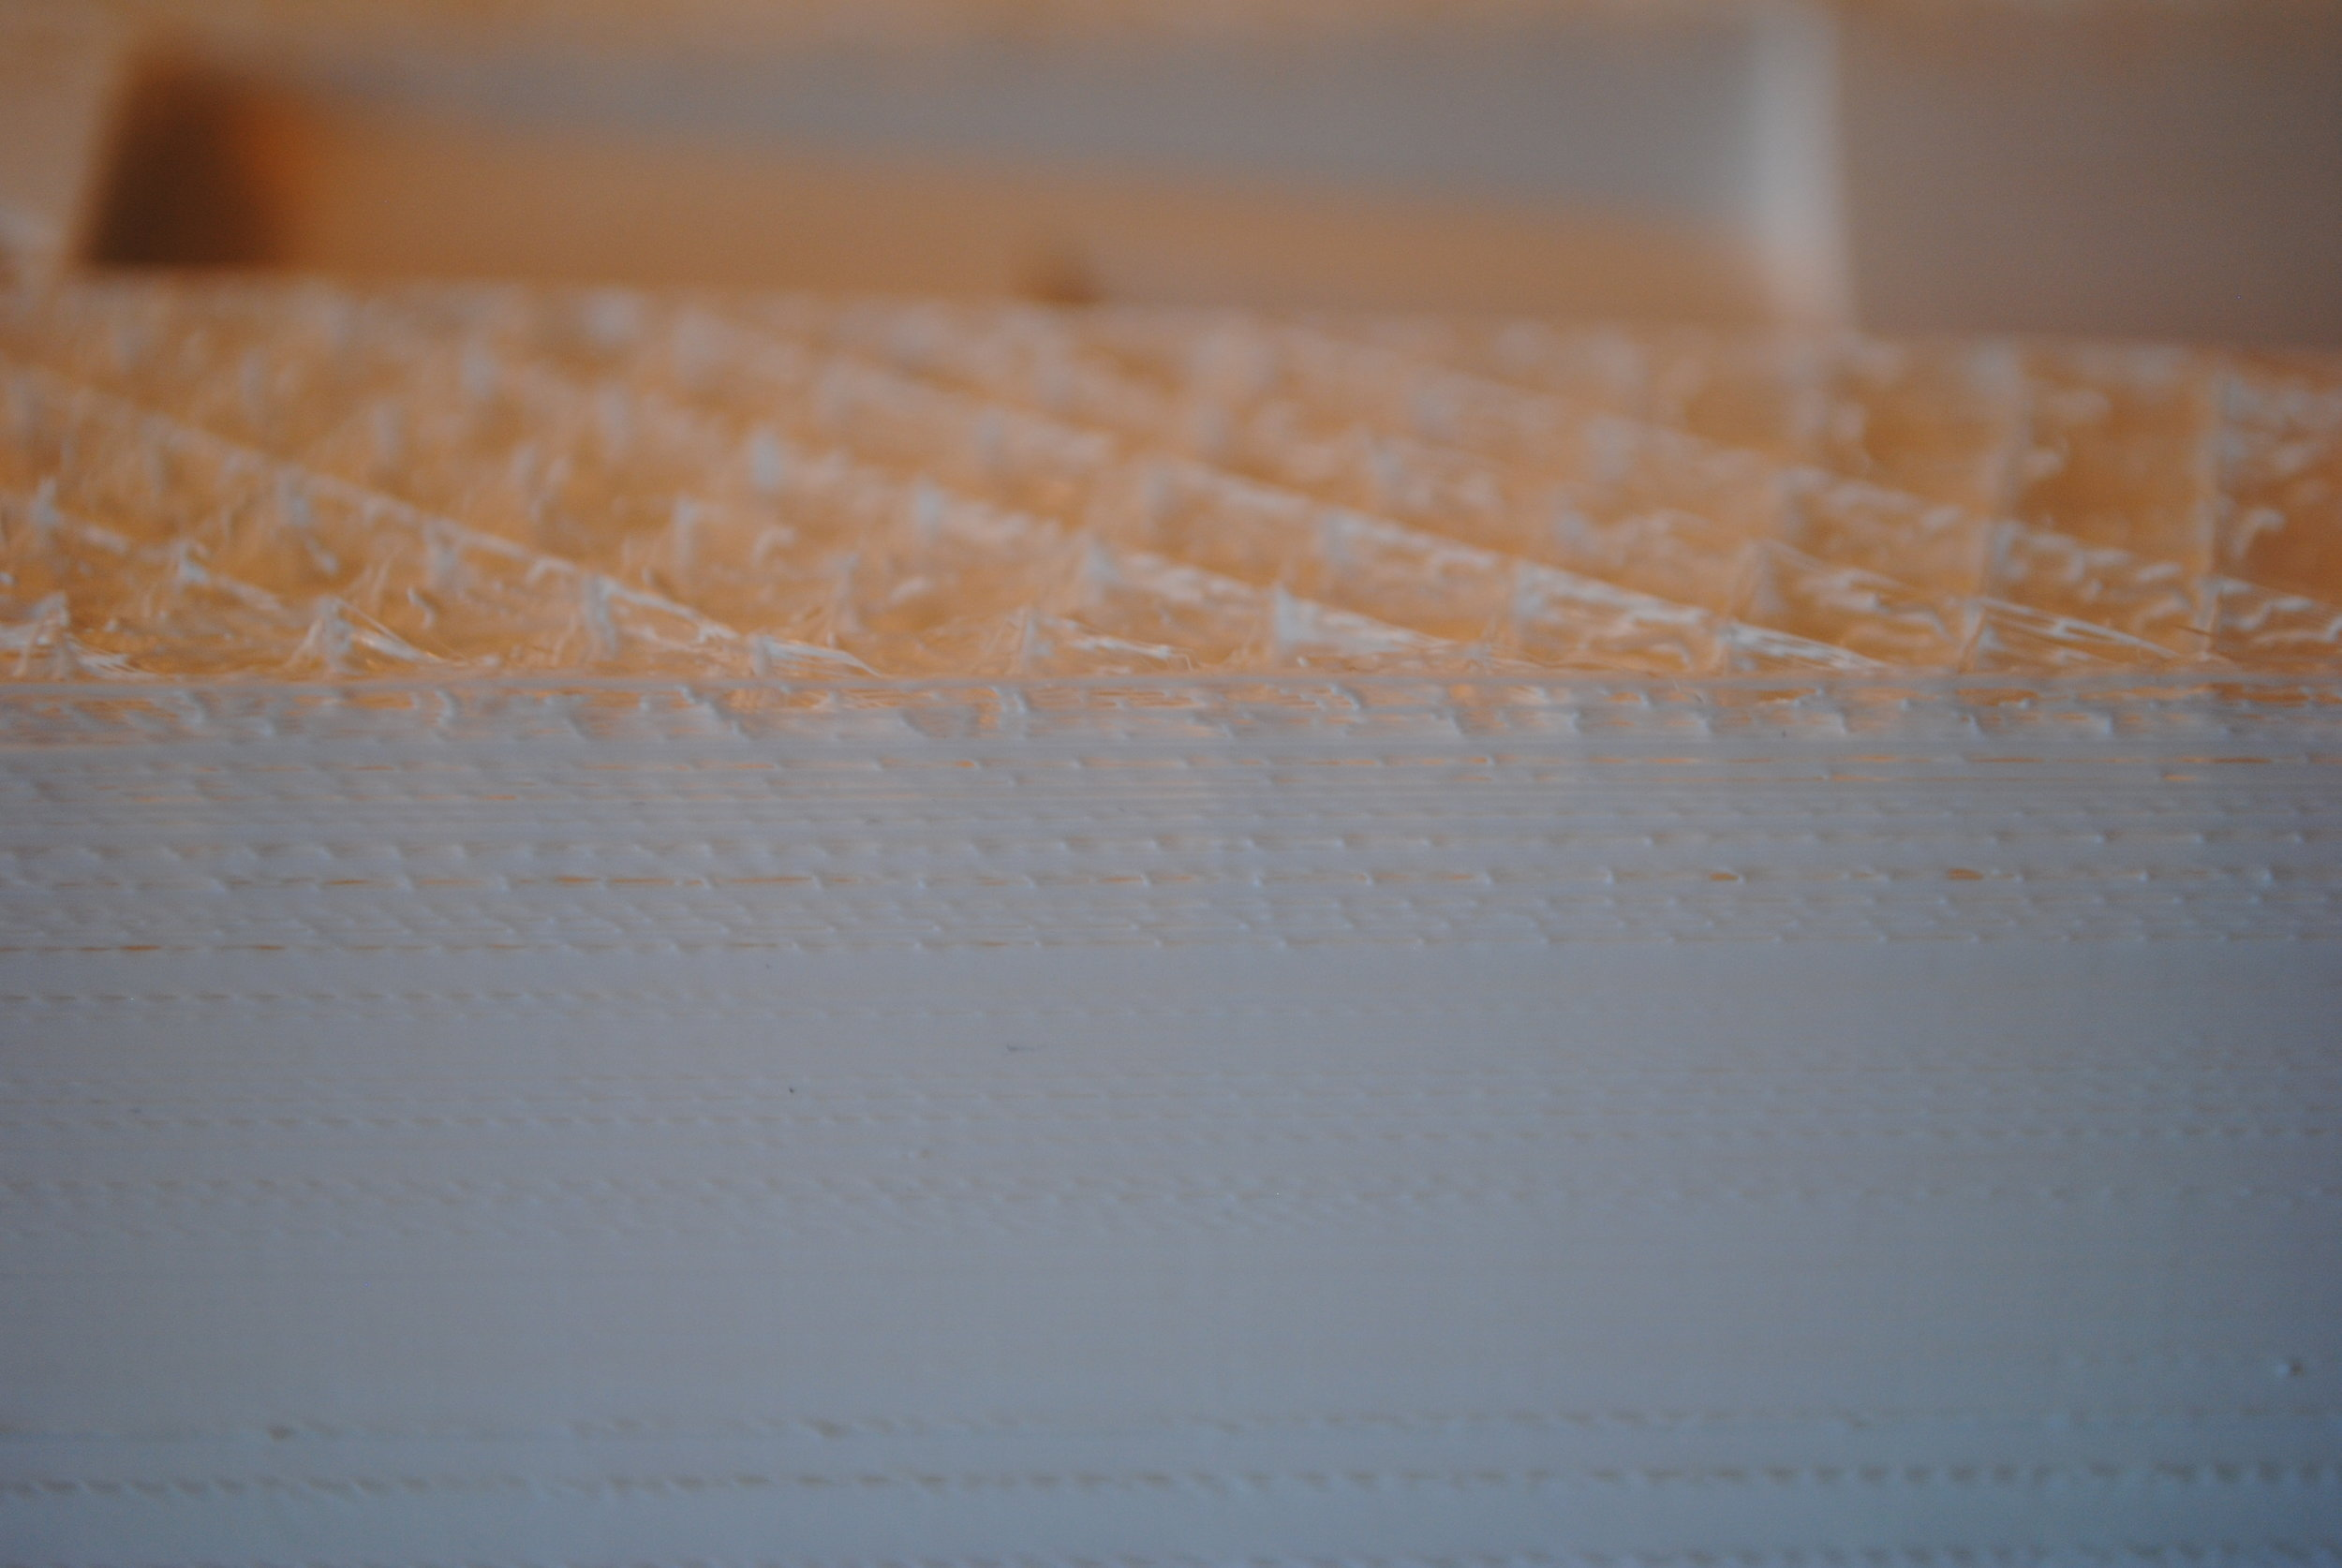 Example of layer separation and poor adhesion of printing medium